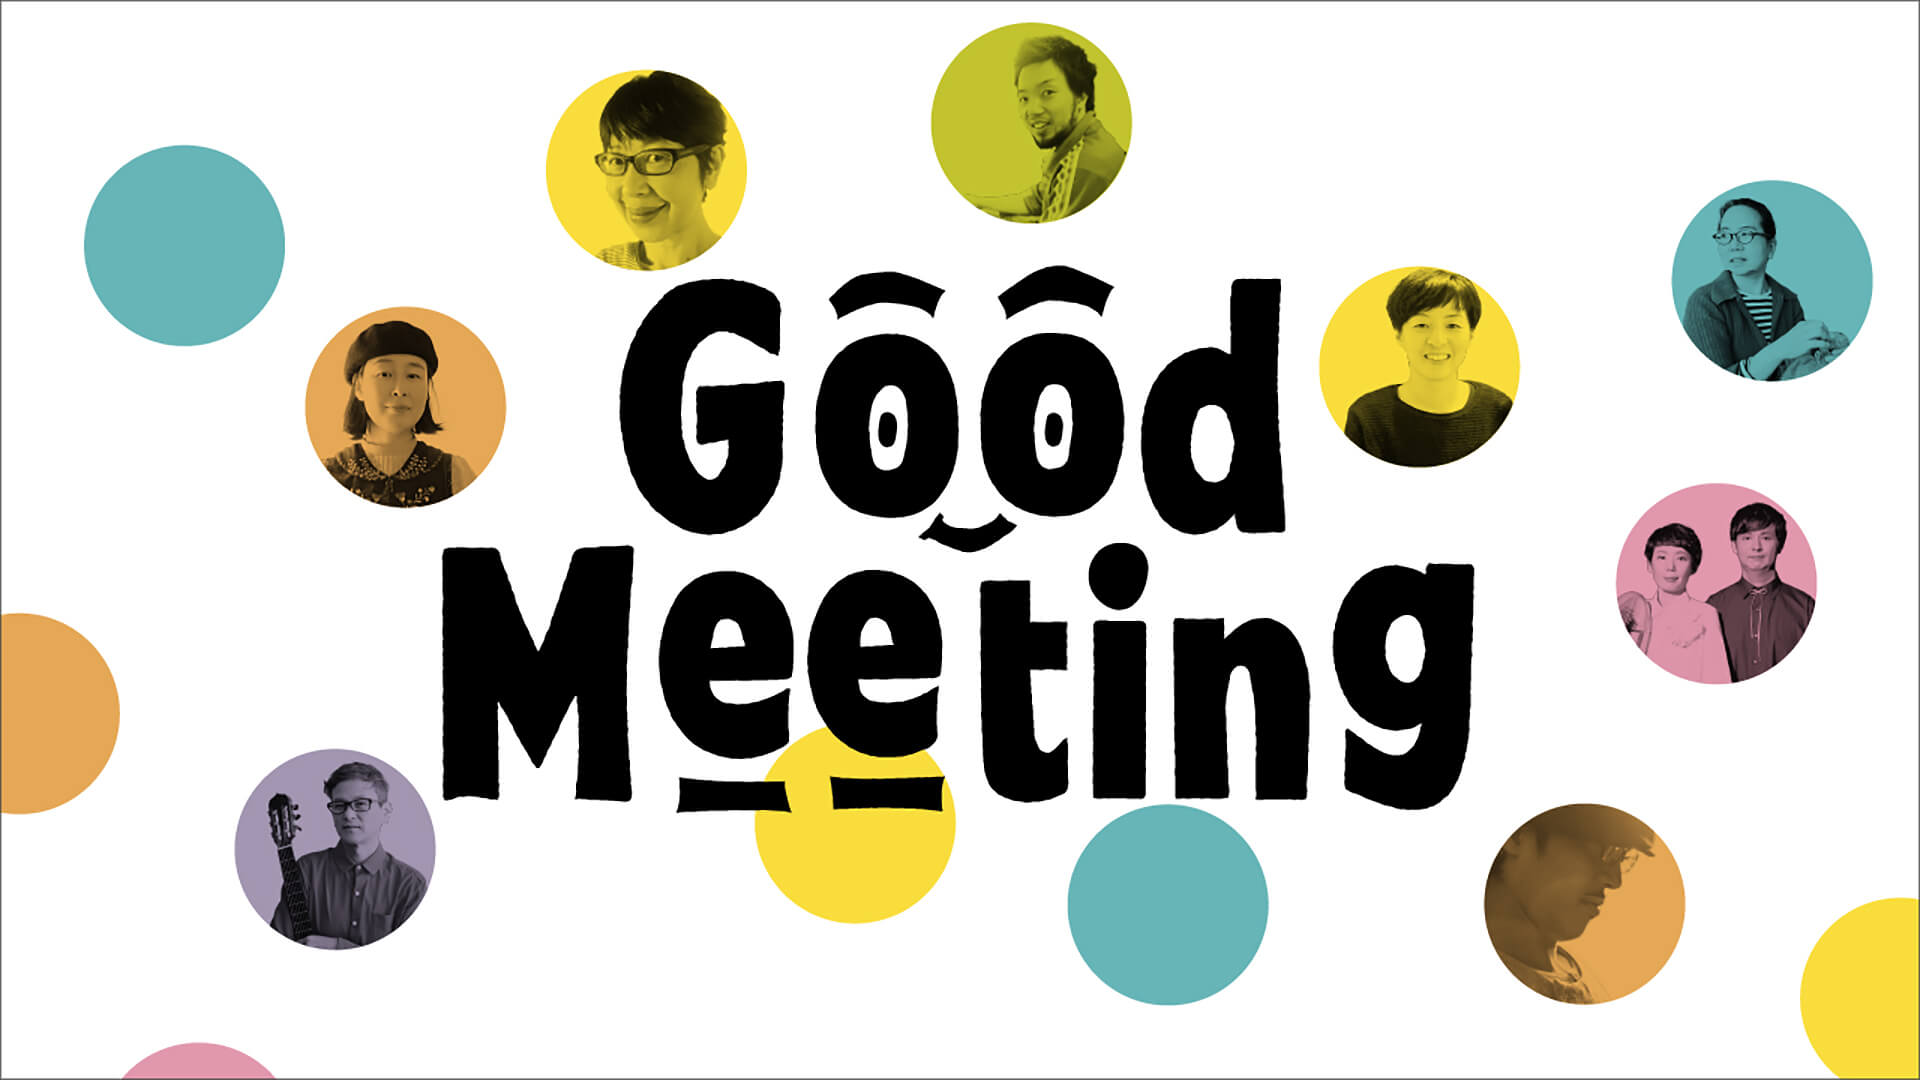 GOOD MEETINGバナー